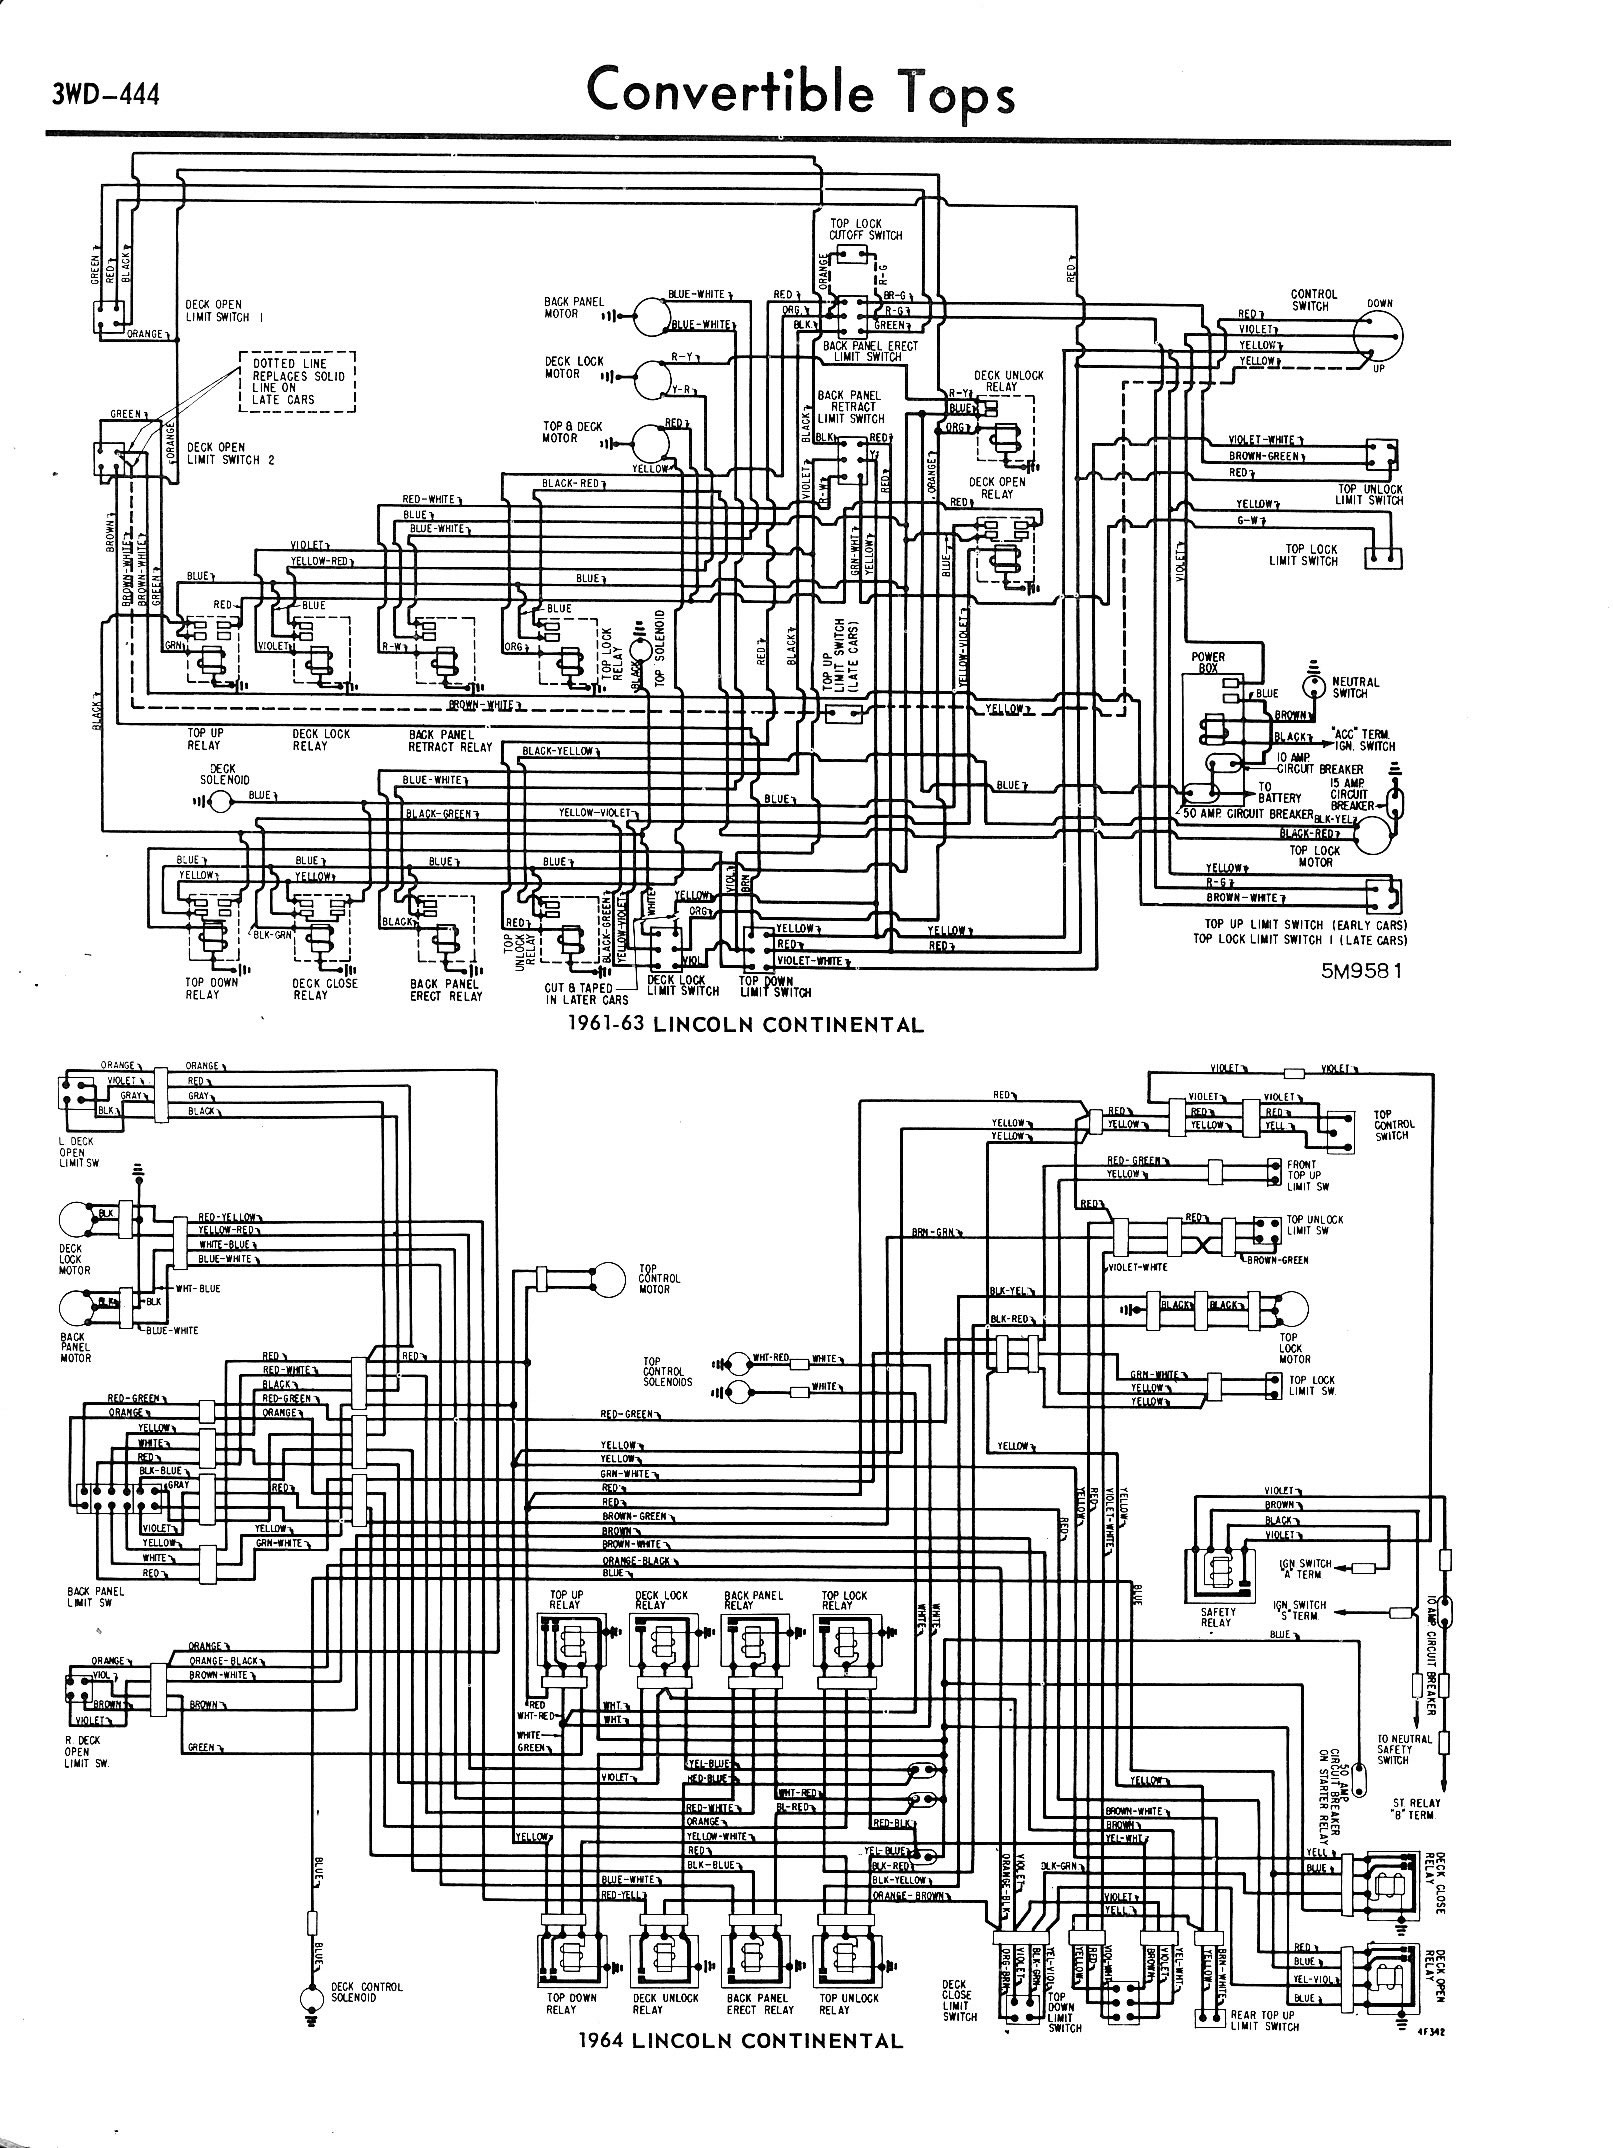 Wire Diagram 1990 Mustang Convertible Top Wiring Diagram Schematics